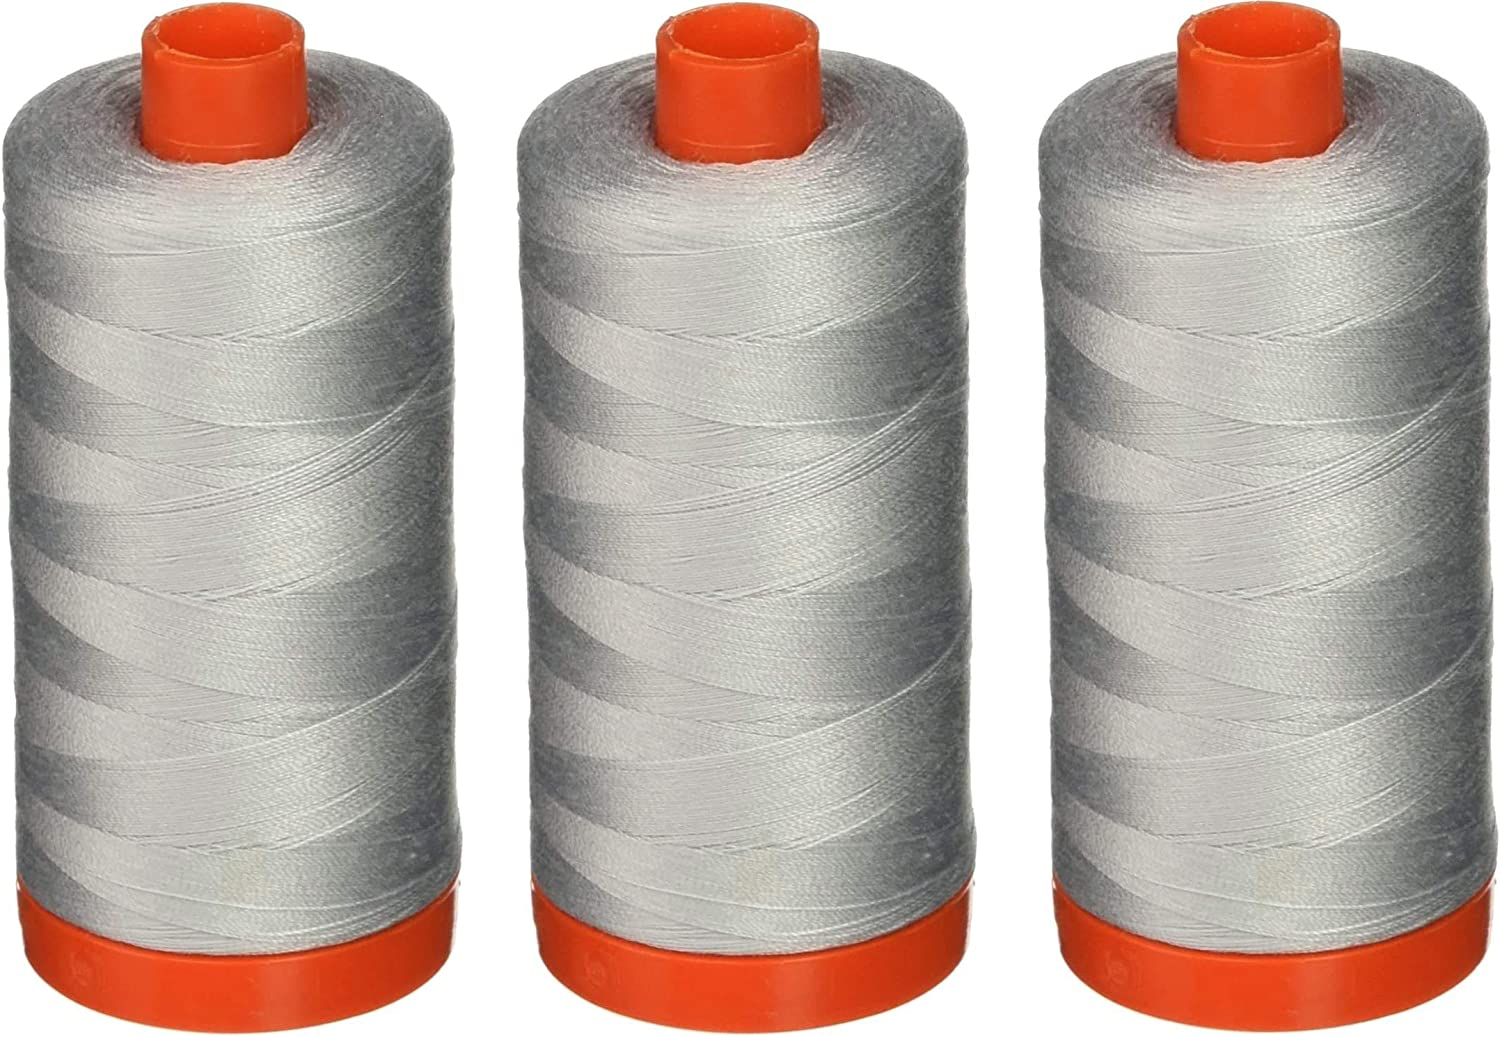 Aurifil Popular brand in the world A1050-2600 Mako Cotton Thread 50WT Solid Dove Ranking TOP19 1422Yds 1